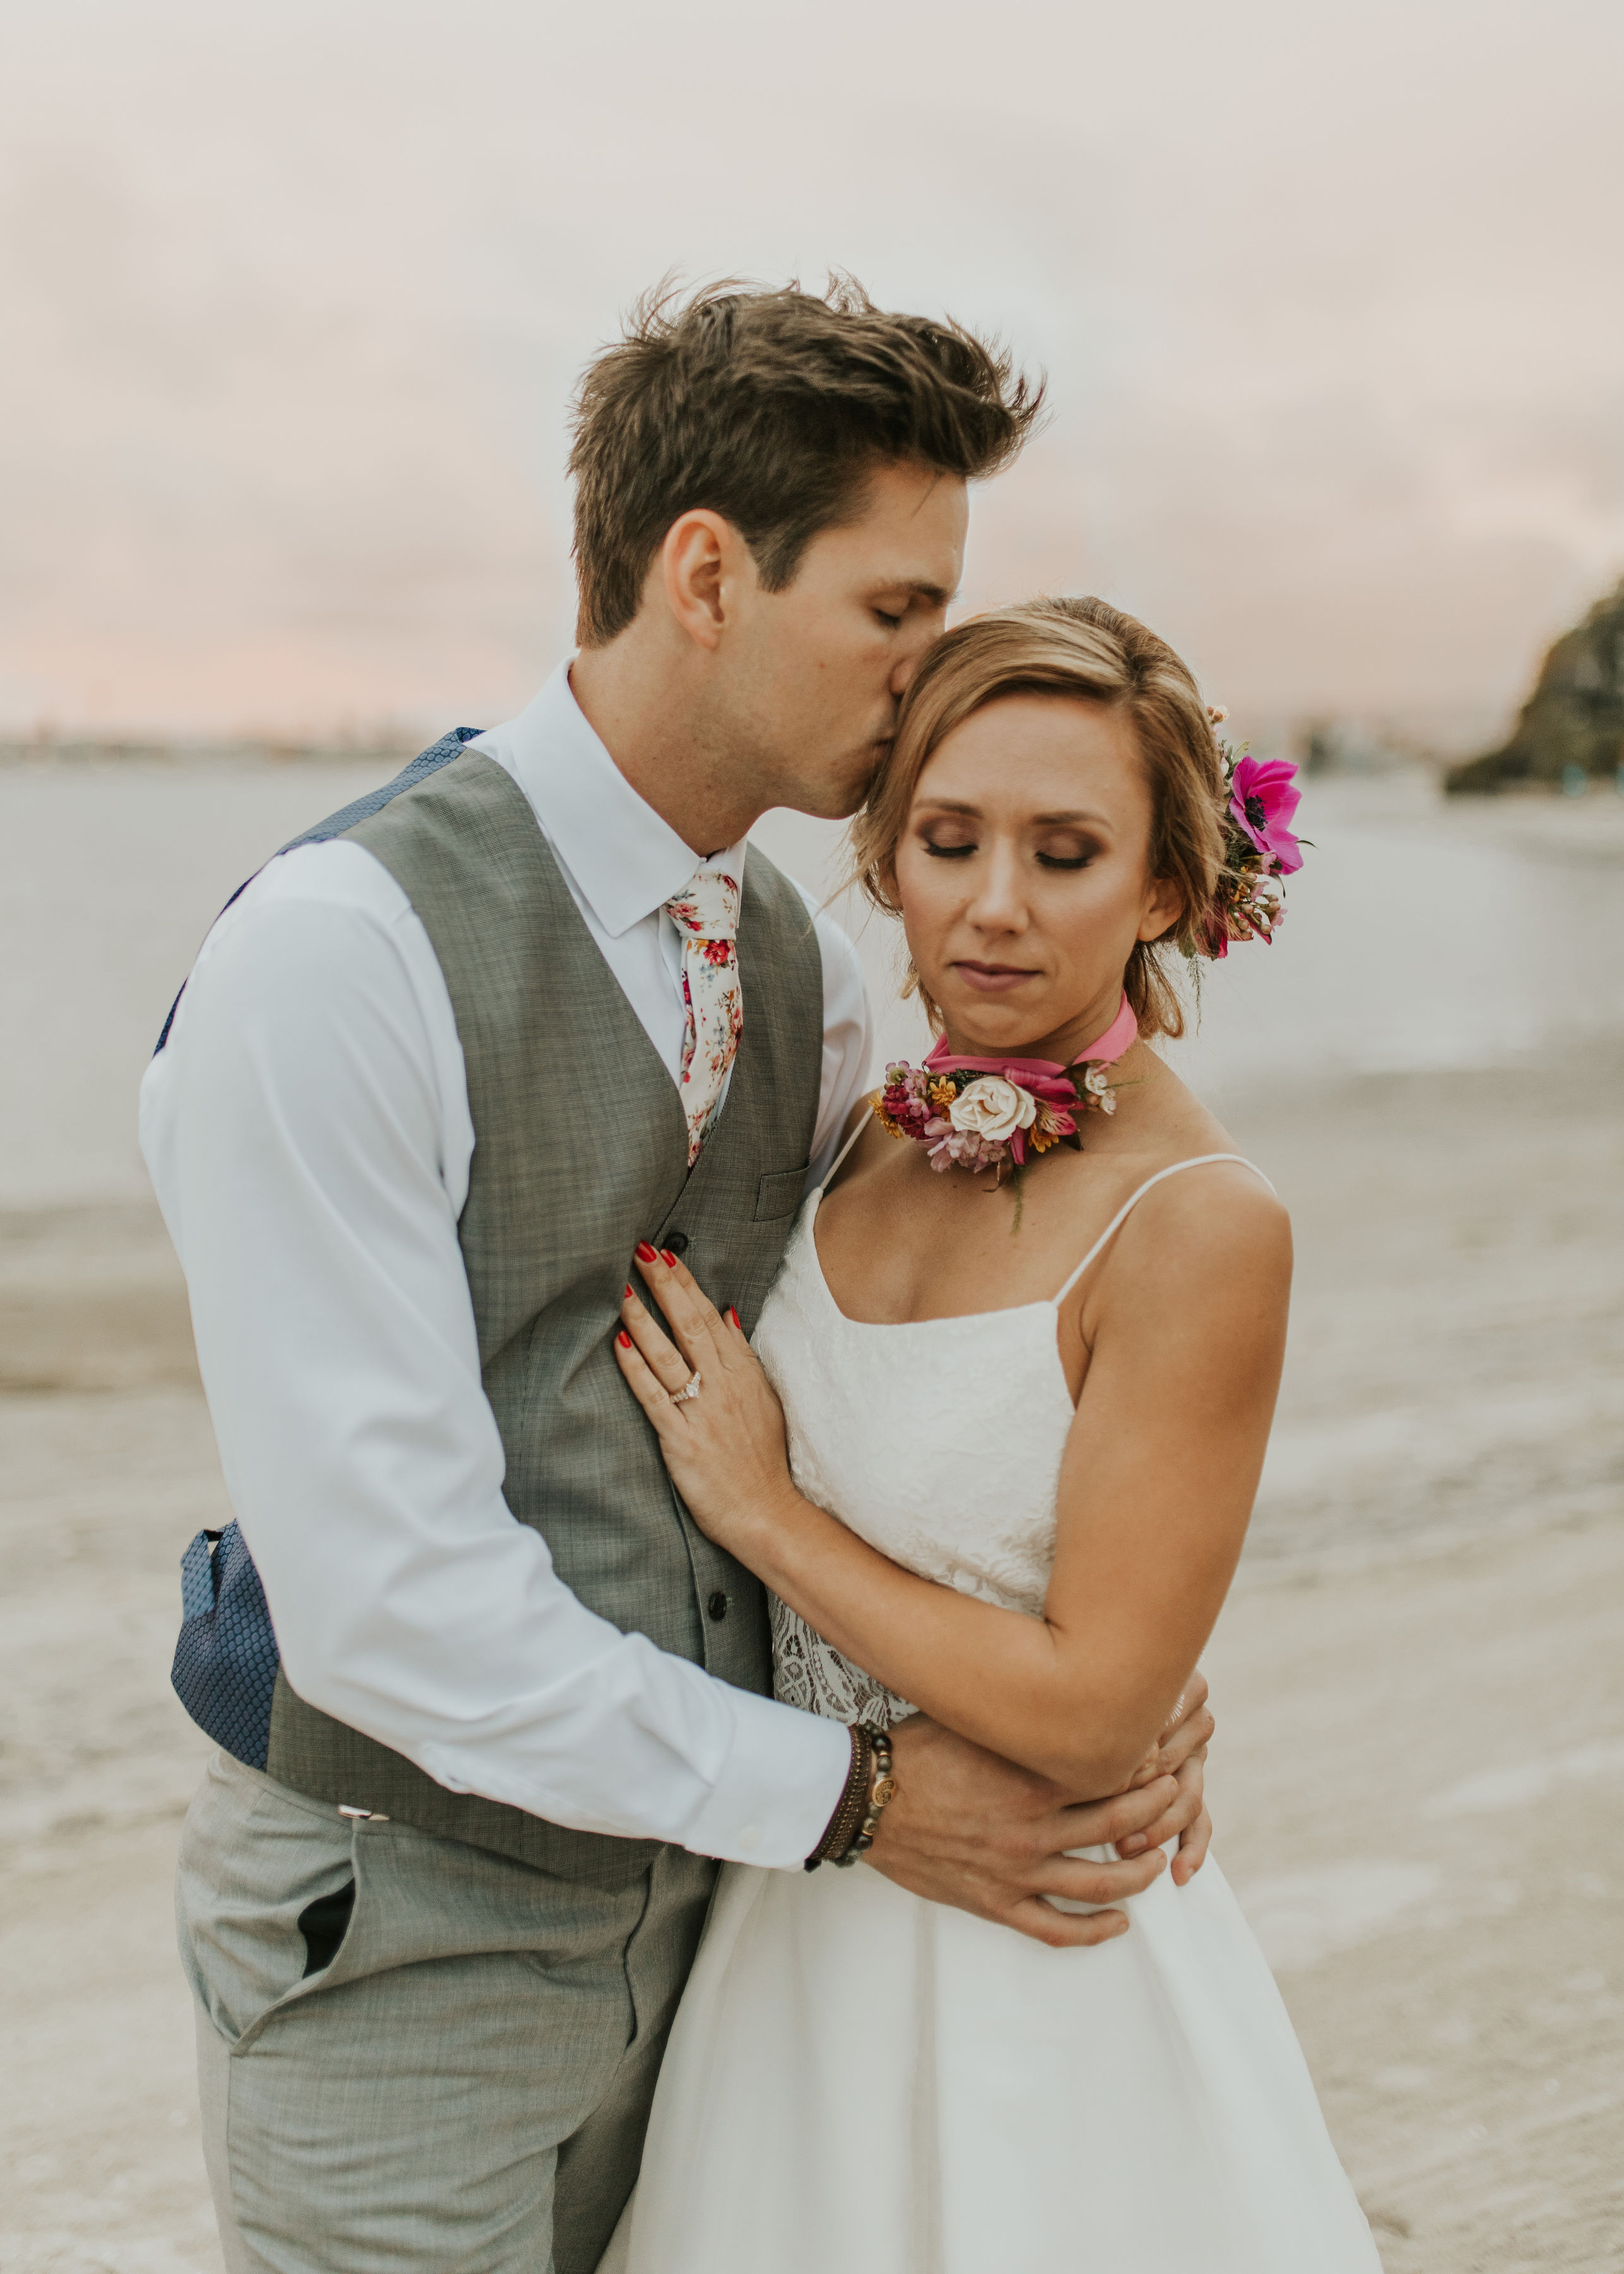 Bright tropical wedding inspiration in San Diego from your friends at With Flourish. Meta Text- Here at With Flourish, we loved this bright tropical wedding inspiration! We had a blast using shades of blush to hot pink and gold and mustard.